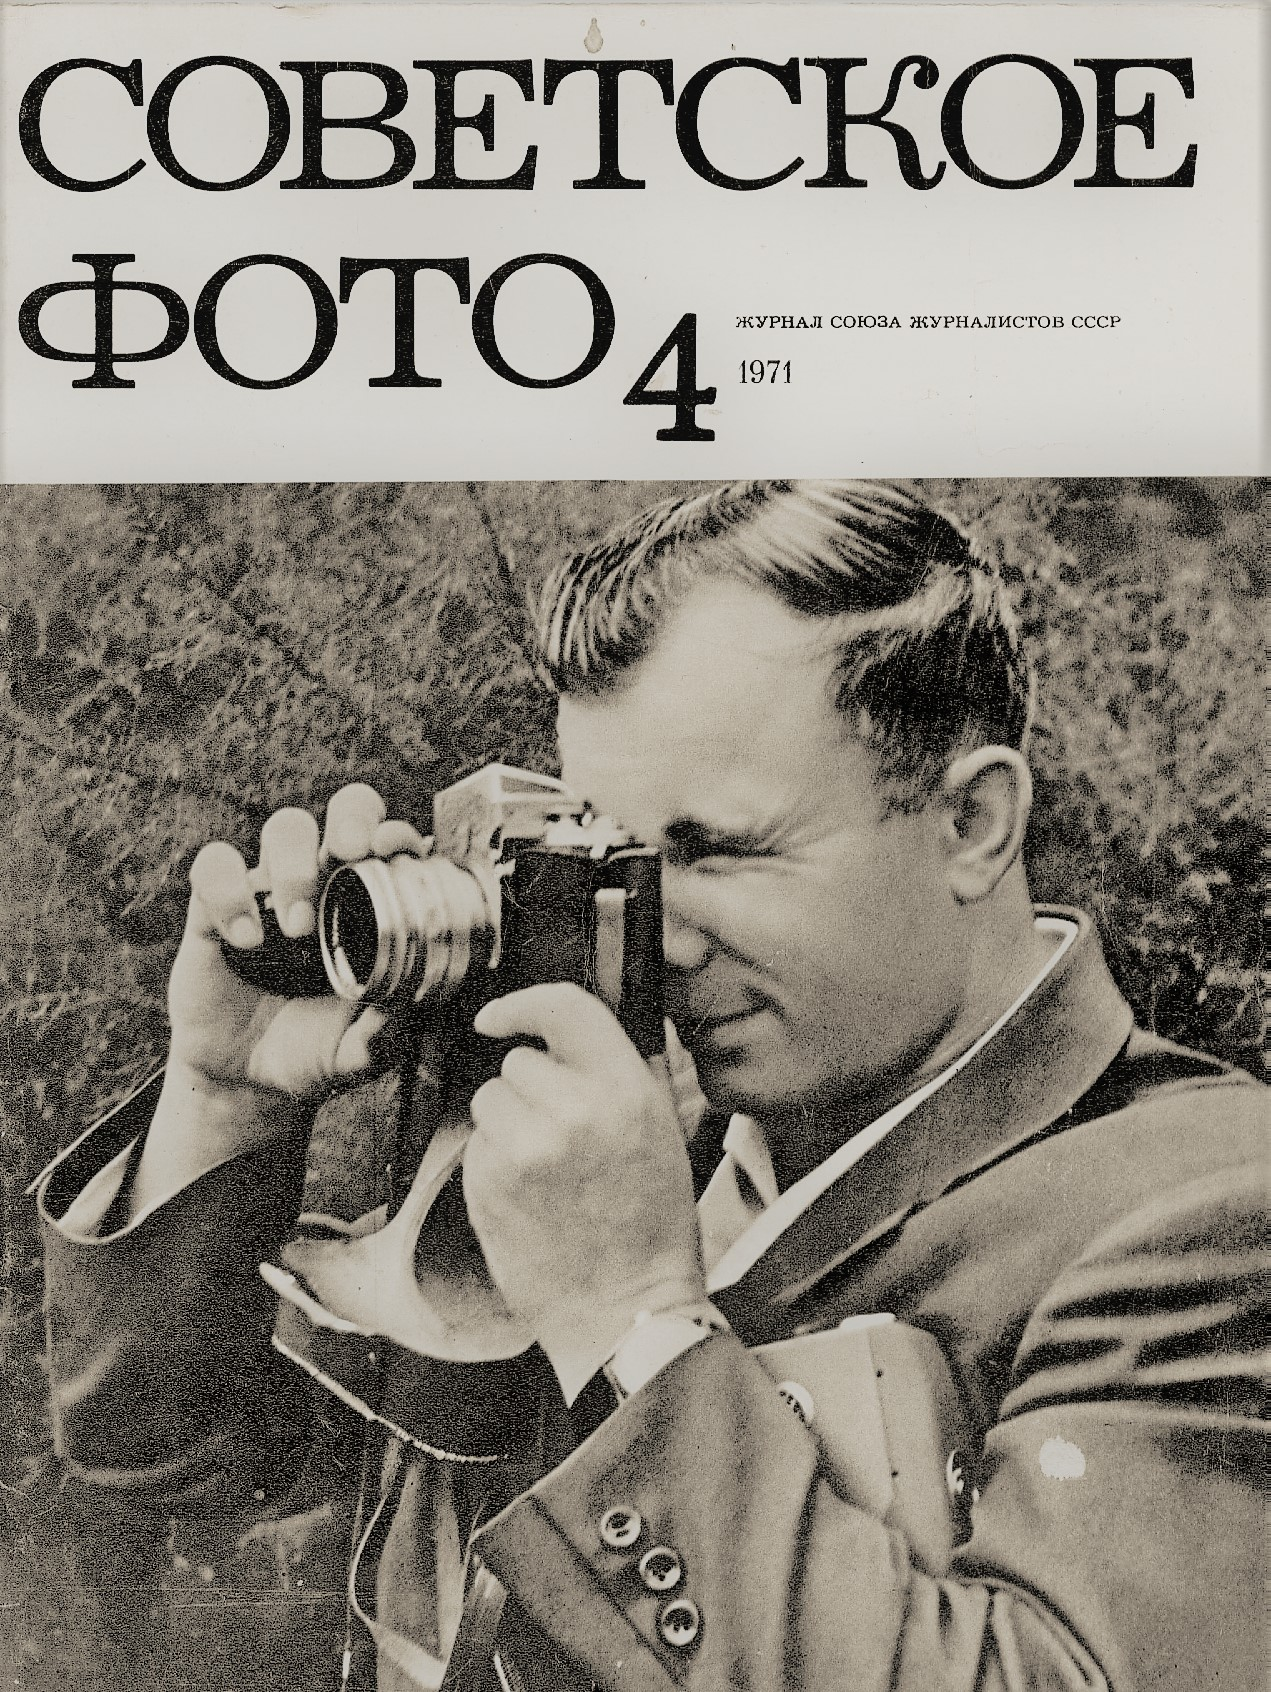 Photographer at work on April 1971 cover of  Sovetskoe Foto  magazine. Man with the camera is Yuri Gagarin, Soviet pilot and cosmonaut, the first human in space. Photo: Nikolai Turanov.